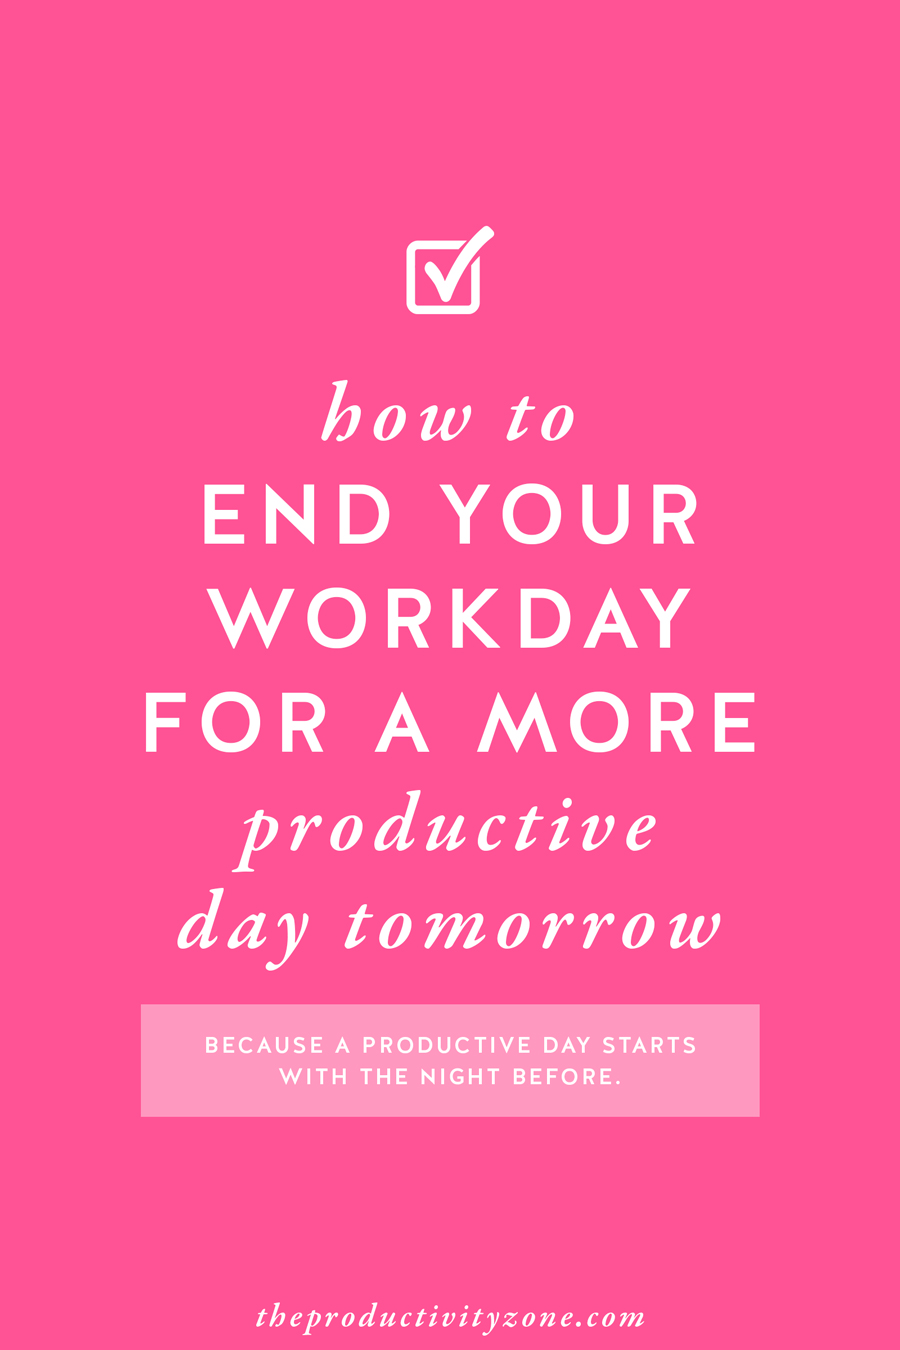 "William Shakespeare was onto something when he said, ""All's well that ends well."" Because a productive day starts with the night before!! Over on The Productivity Zone, I'm sharing the best ways to end your workday for a more productive day tomorrow!!"